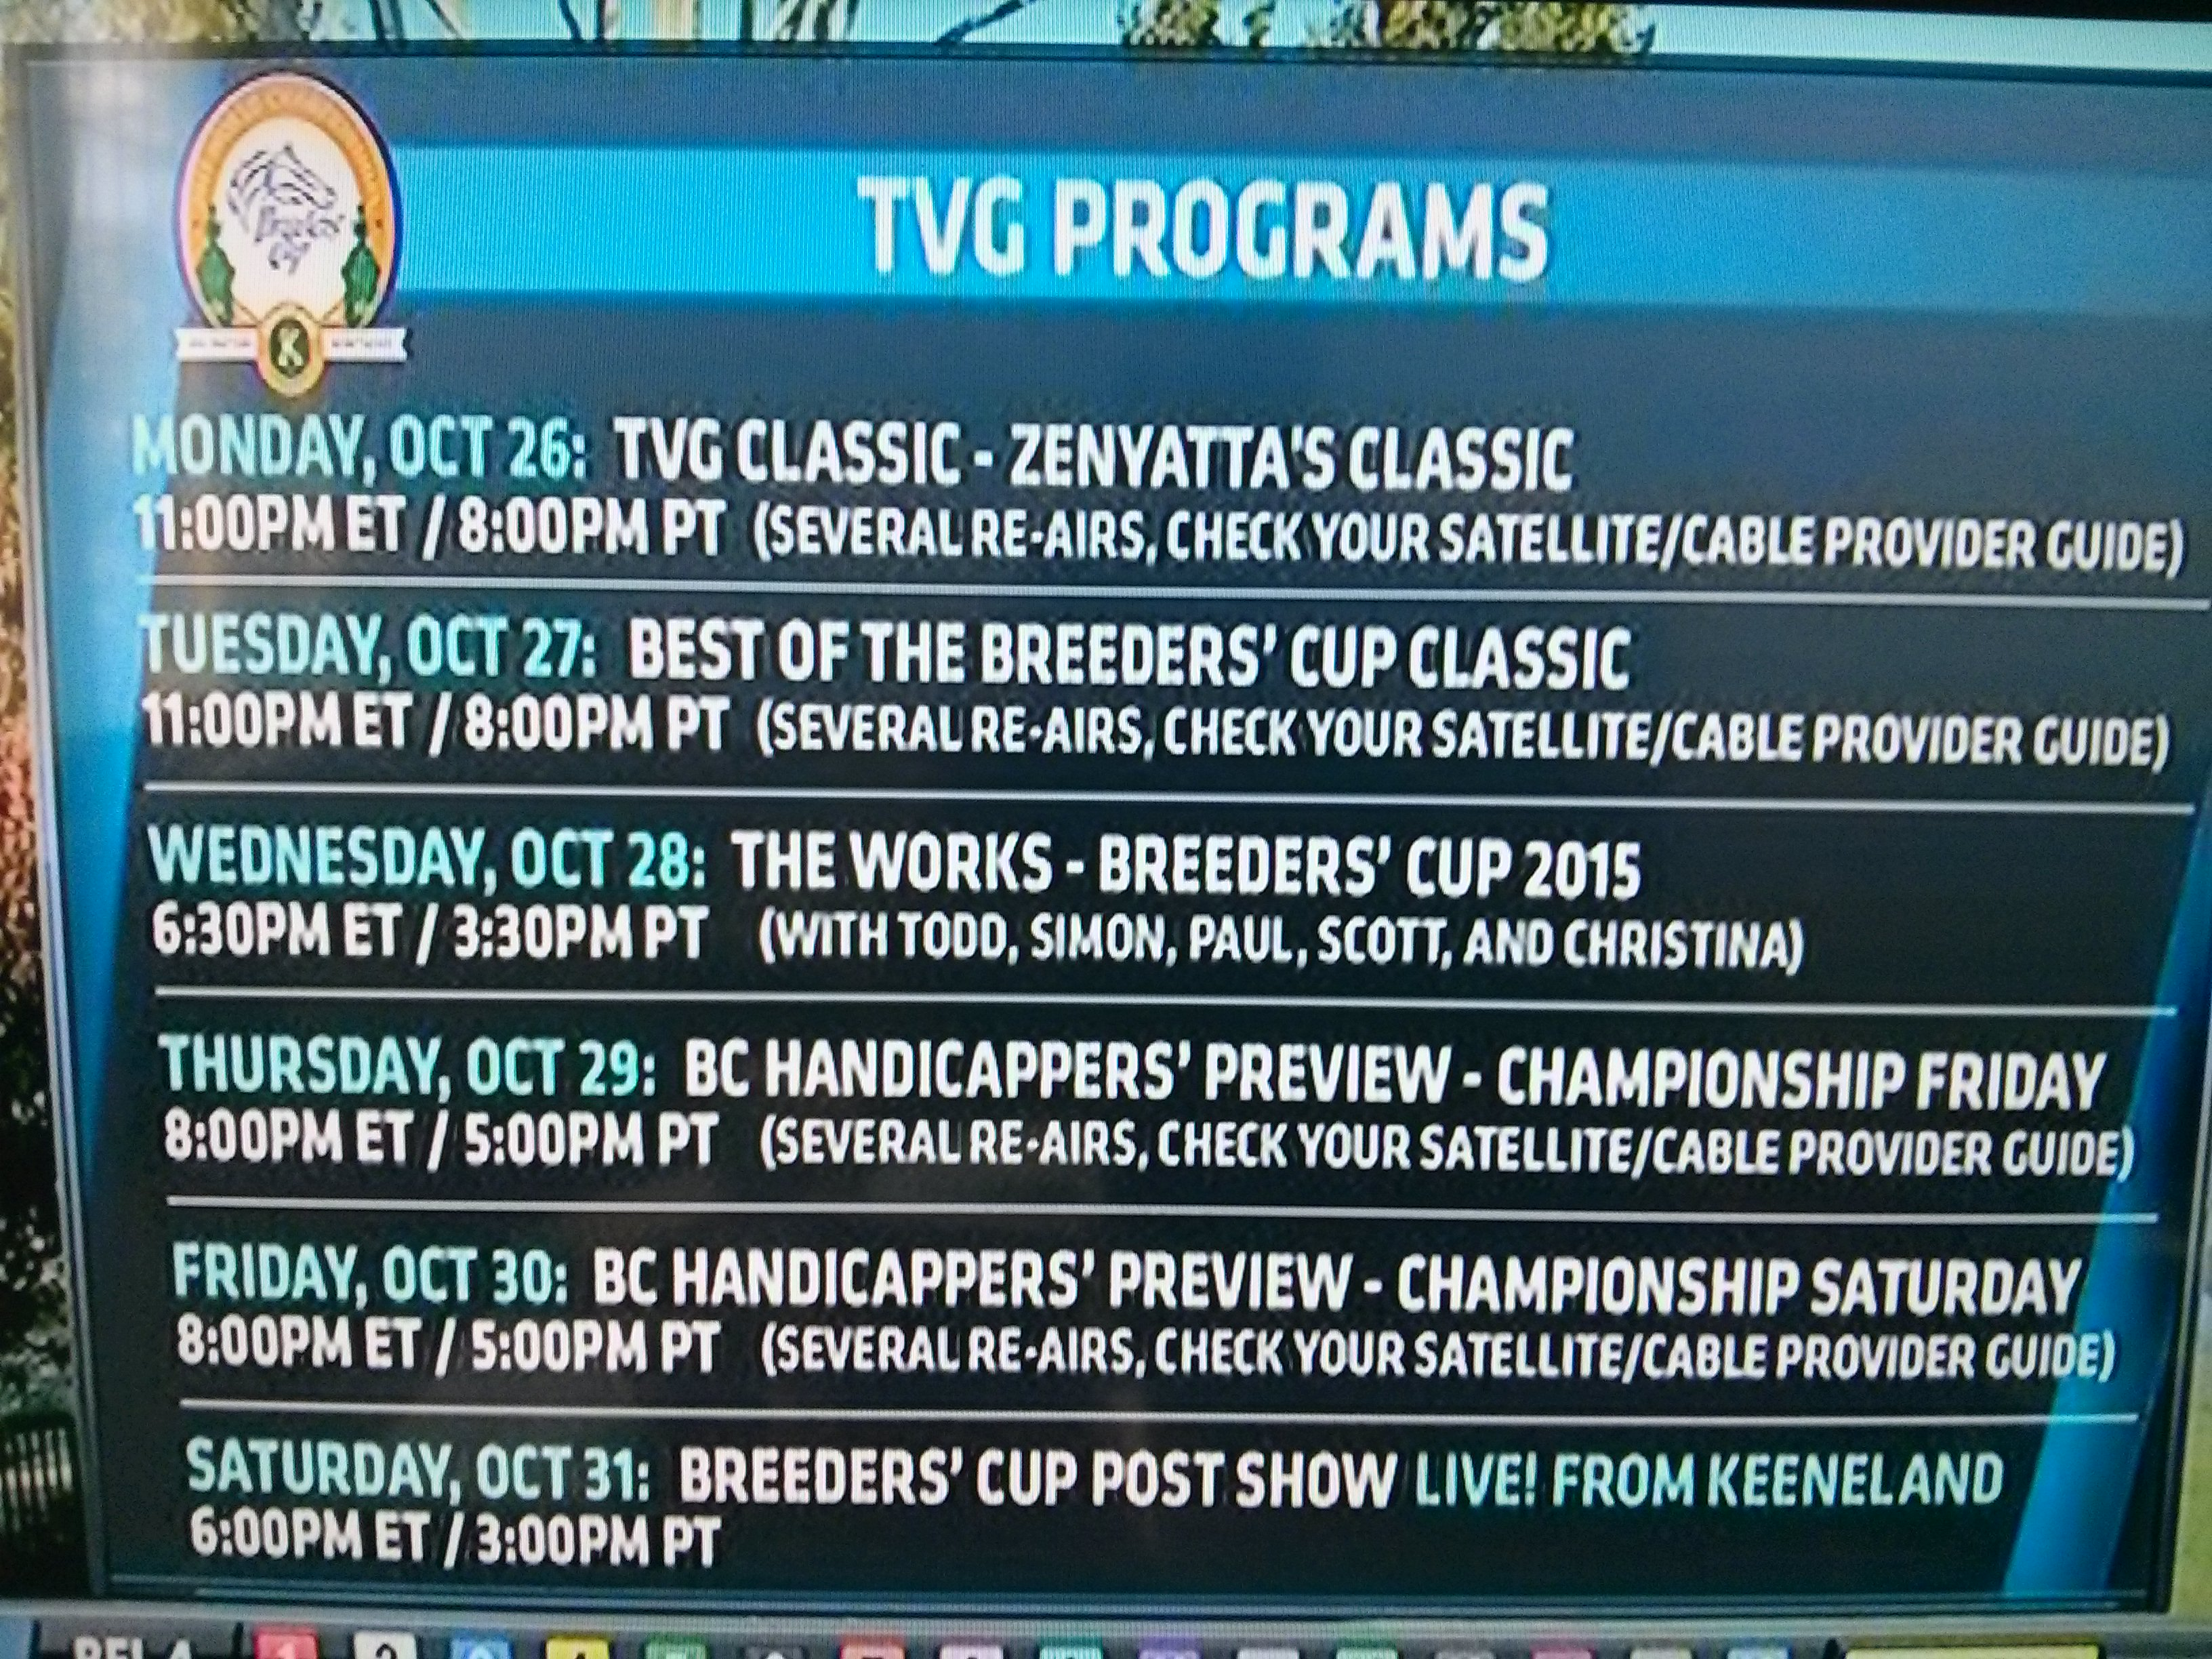 2015 Breeders' Cup TV schedule